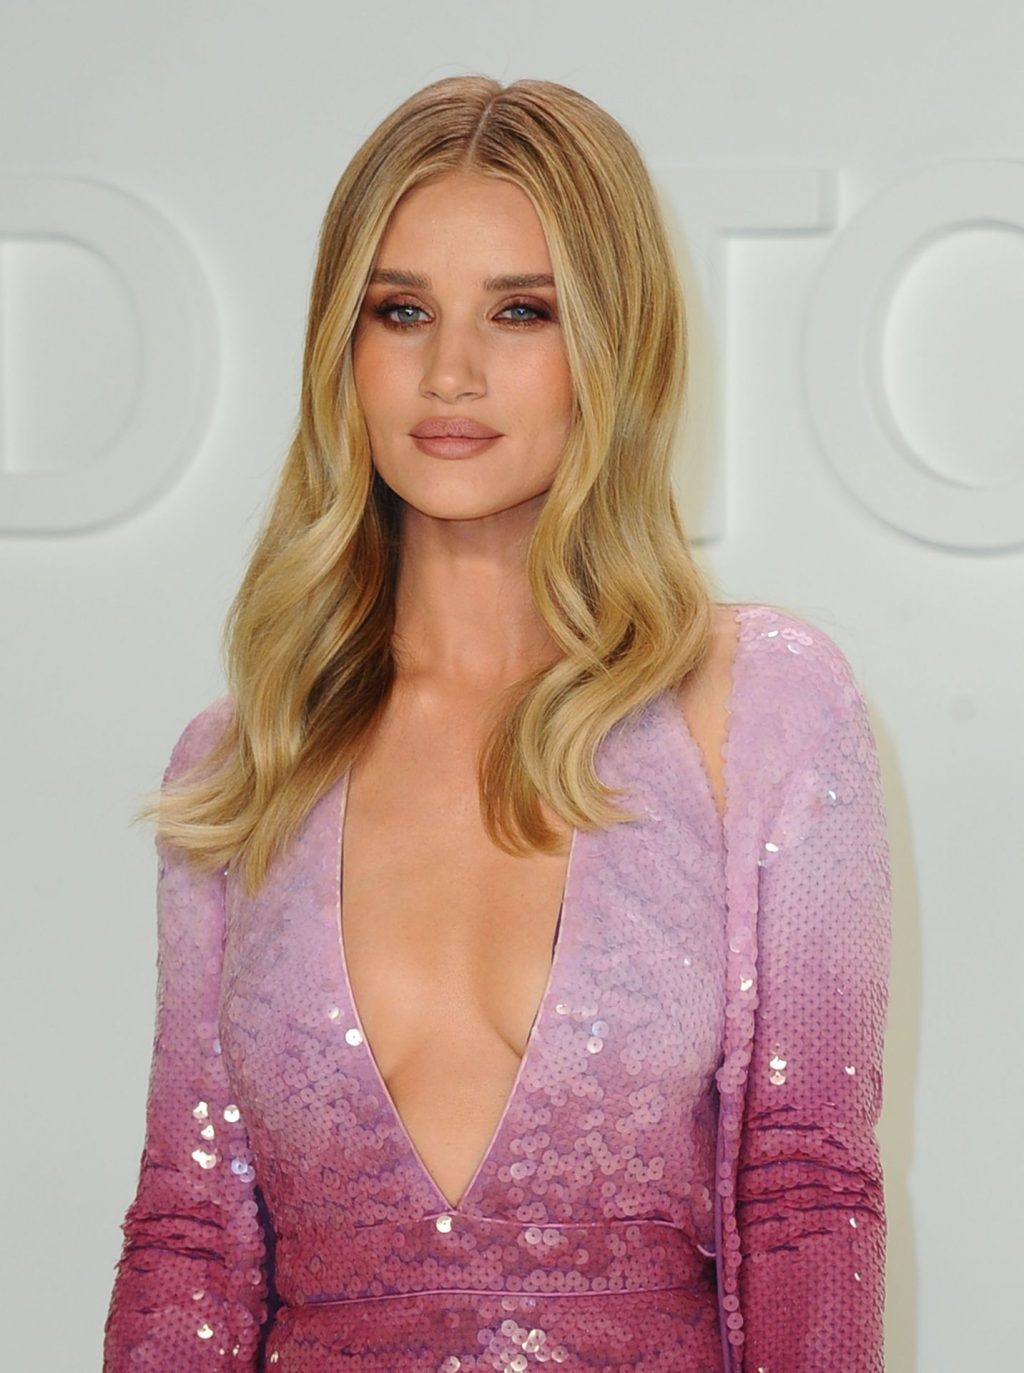 Rosie Huntington Whiteley Sexy The Fappening Blog 4 1024x1373 - Rosie Huntington-Whiteley Shows Her Cleavage at the Tom Ford Fashion Show (115 Photos)